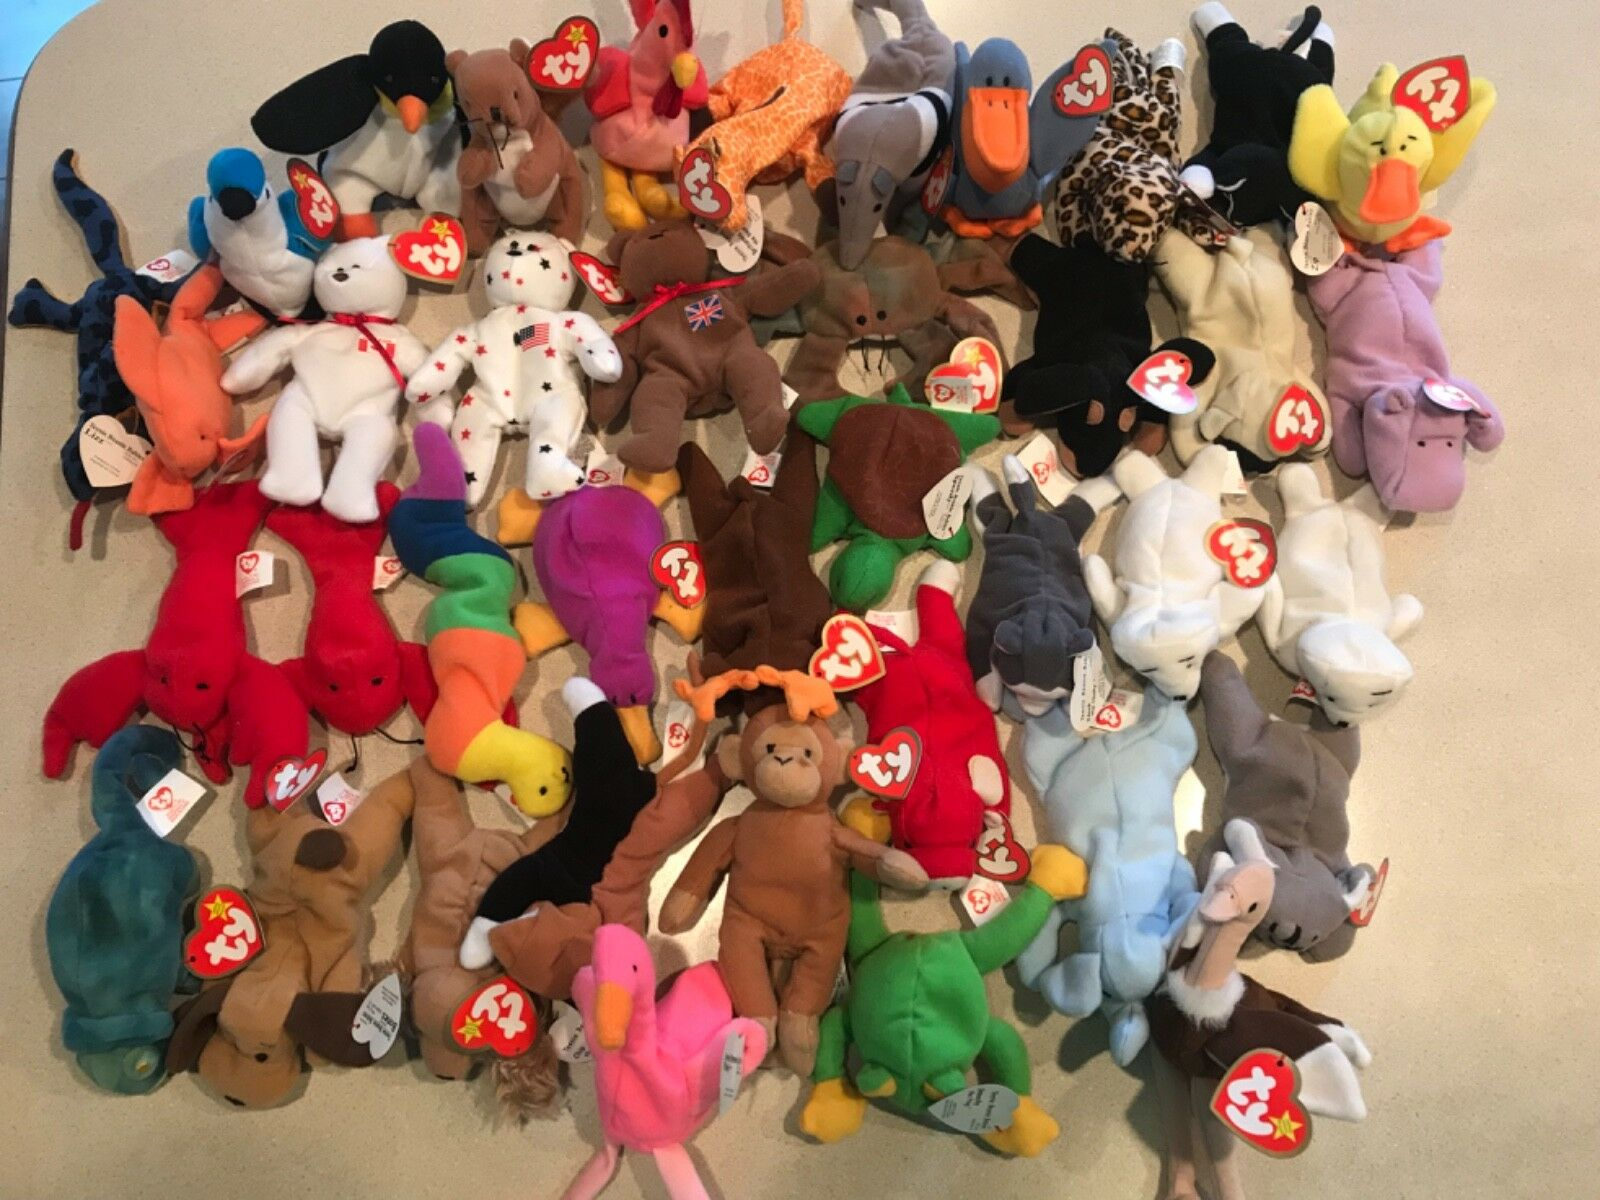 367f941bfe9 Huge Beanie Babies collection including Teenie Beanie Babies ...